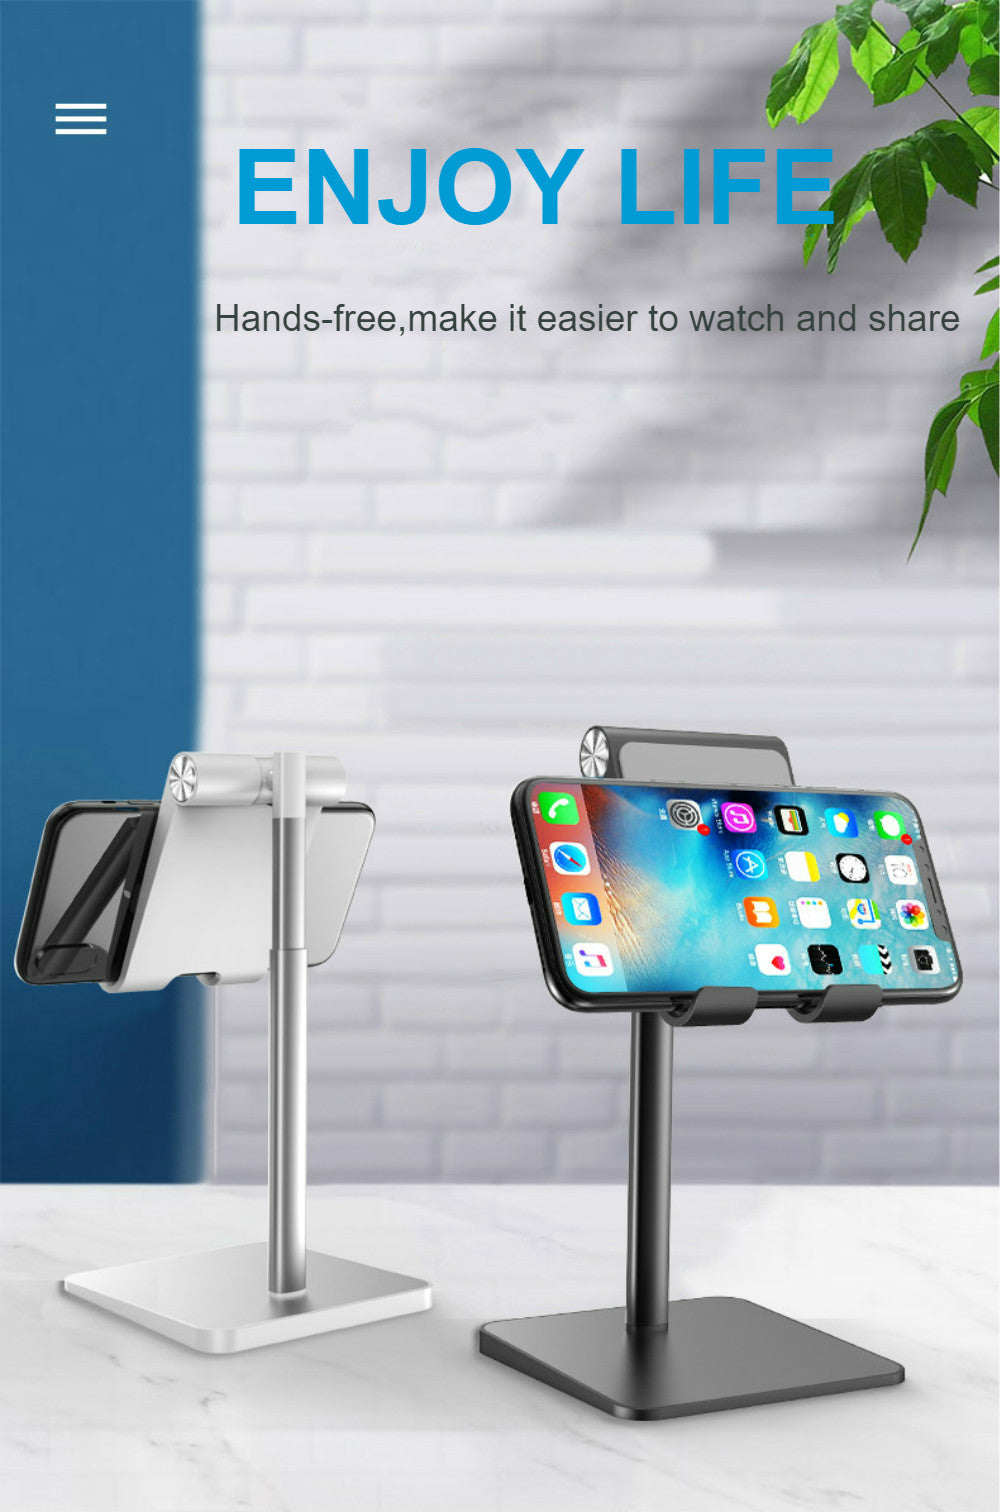 Tablet Desktop Stand Phone Holder iPad Pro 11 10.5 9.7 Mini Aluminum Stand For Holding Tablet Or Phone For Work For Video Calls Fits Most Phones Tablets